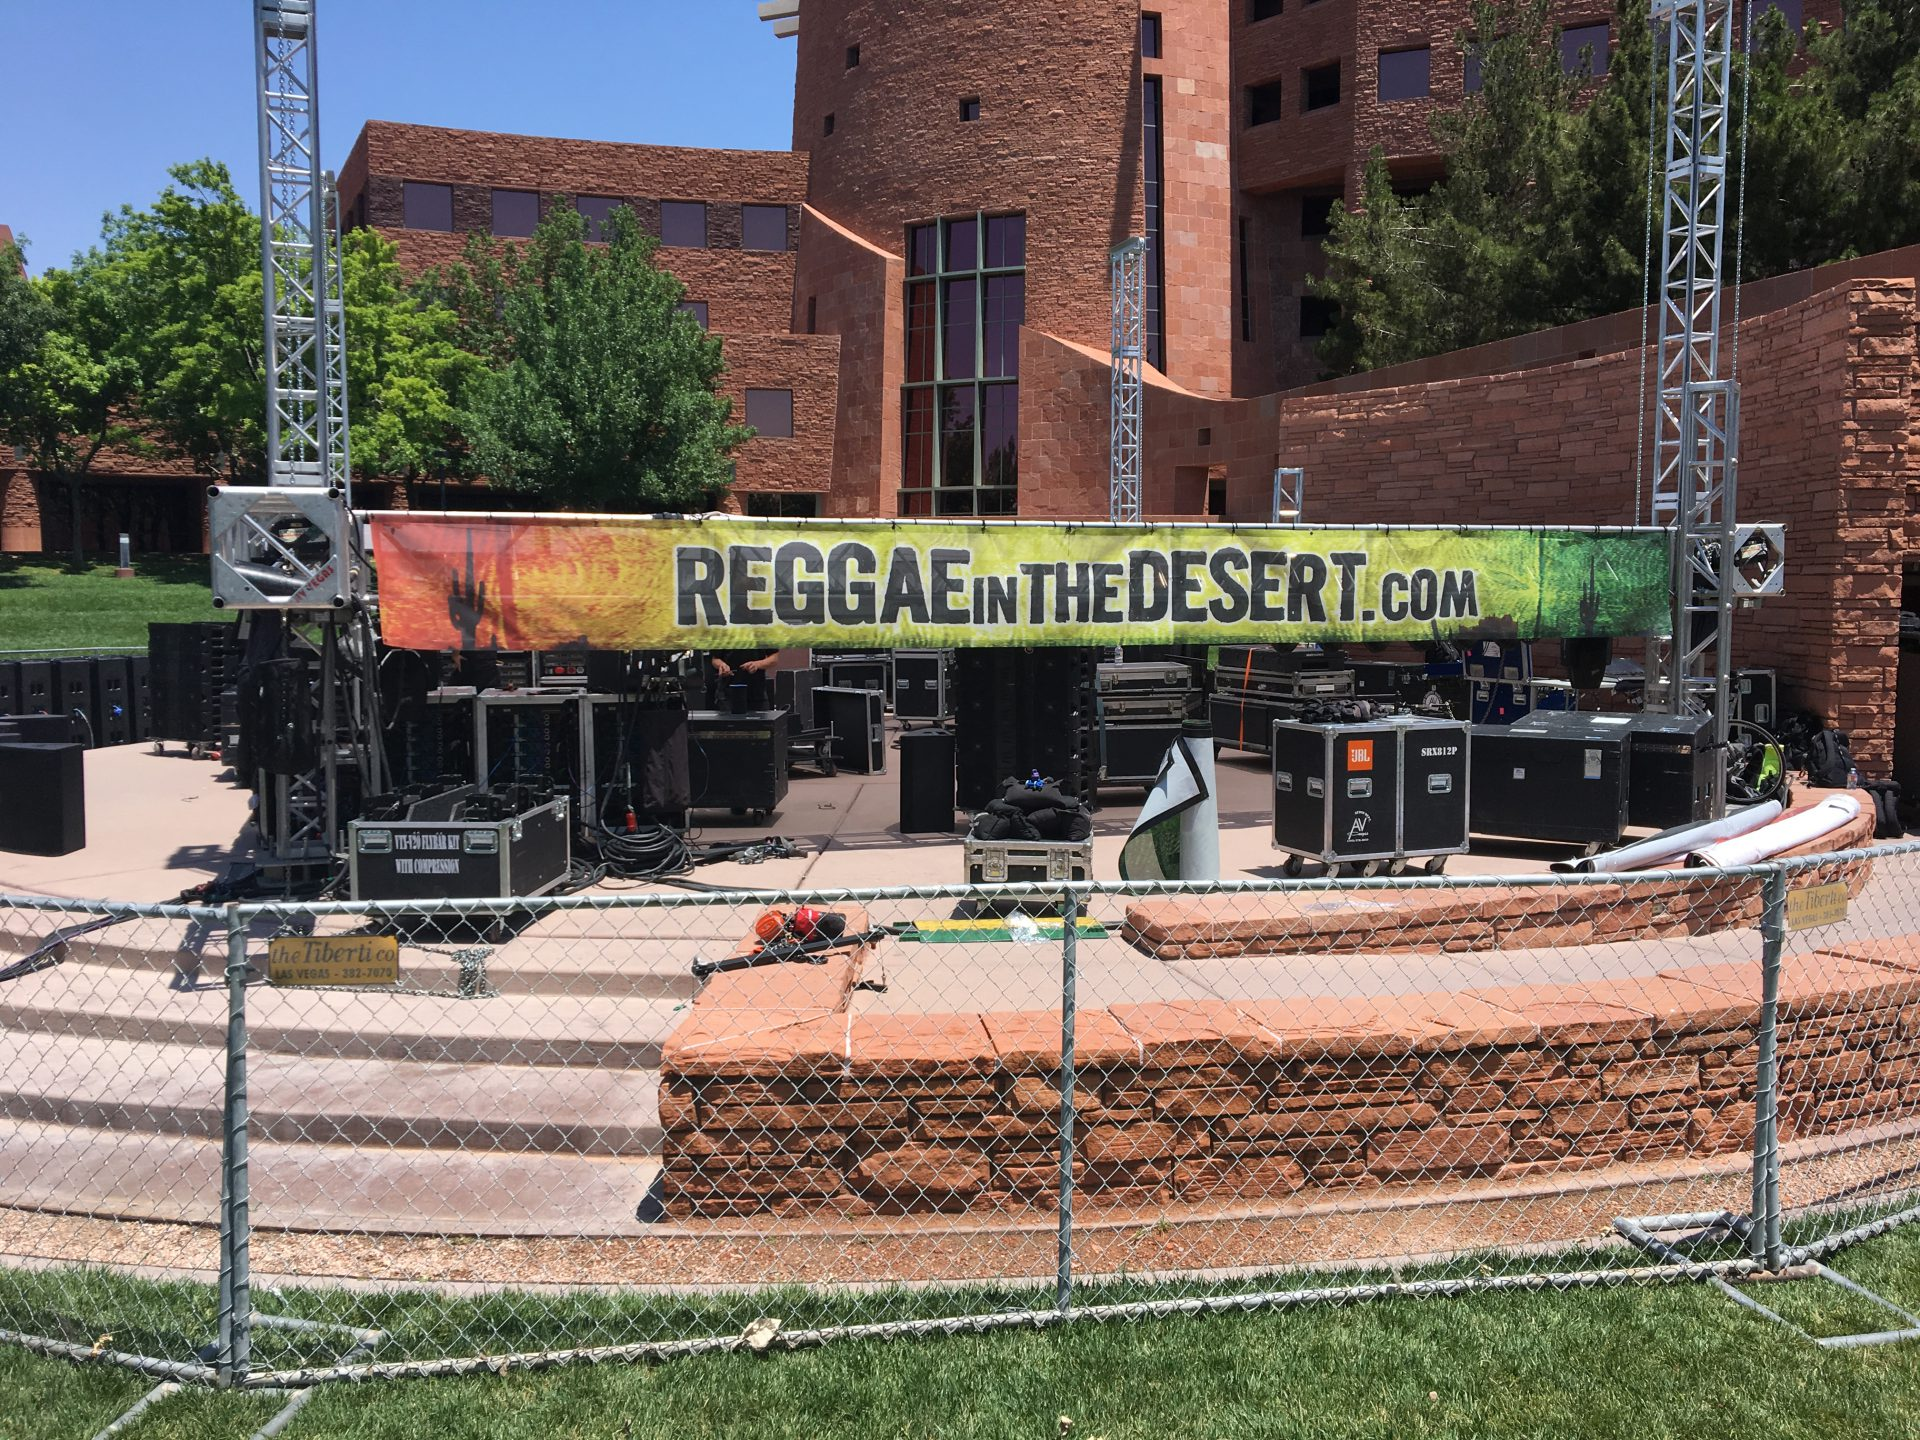 Reggae in the Desert 2018